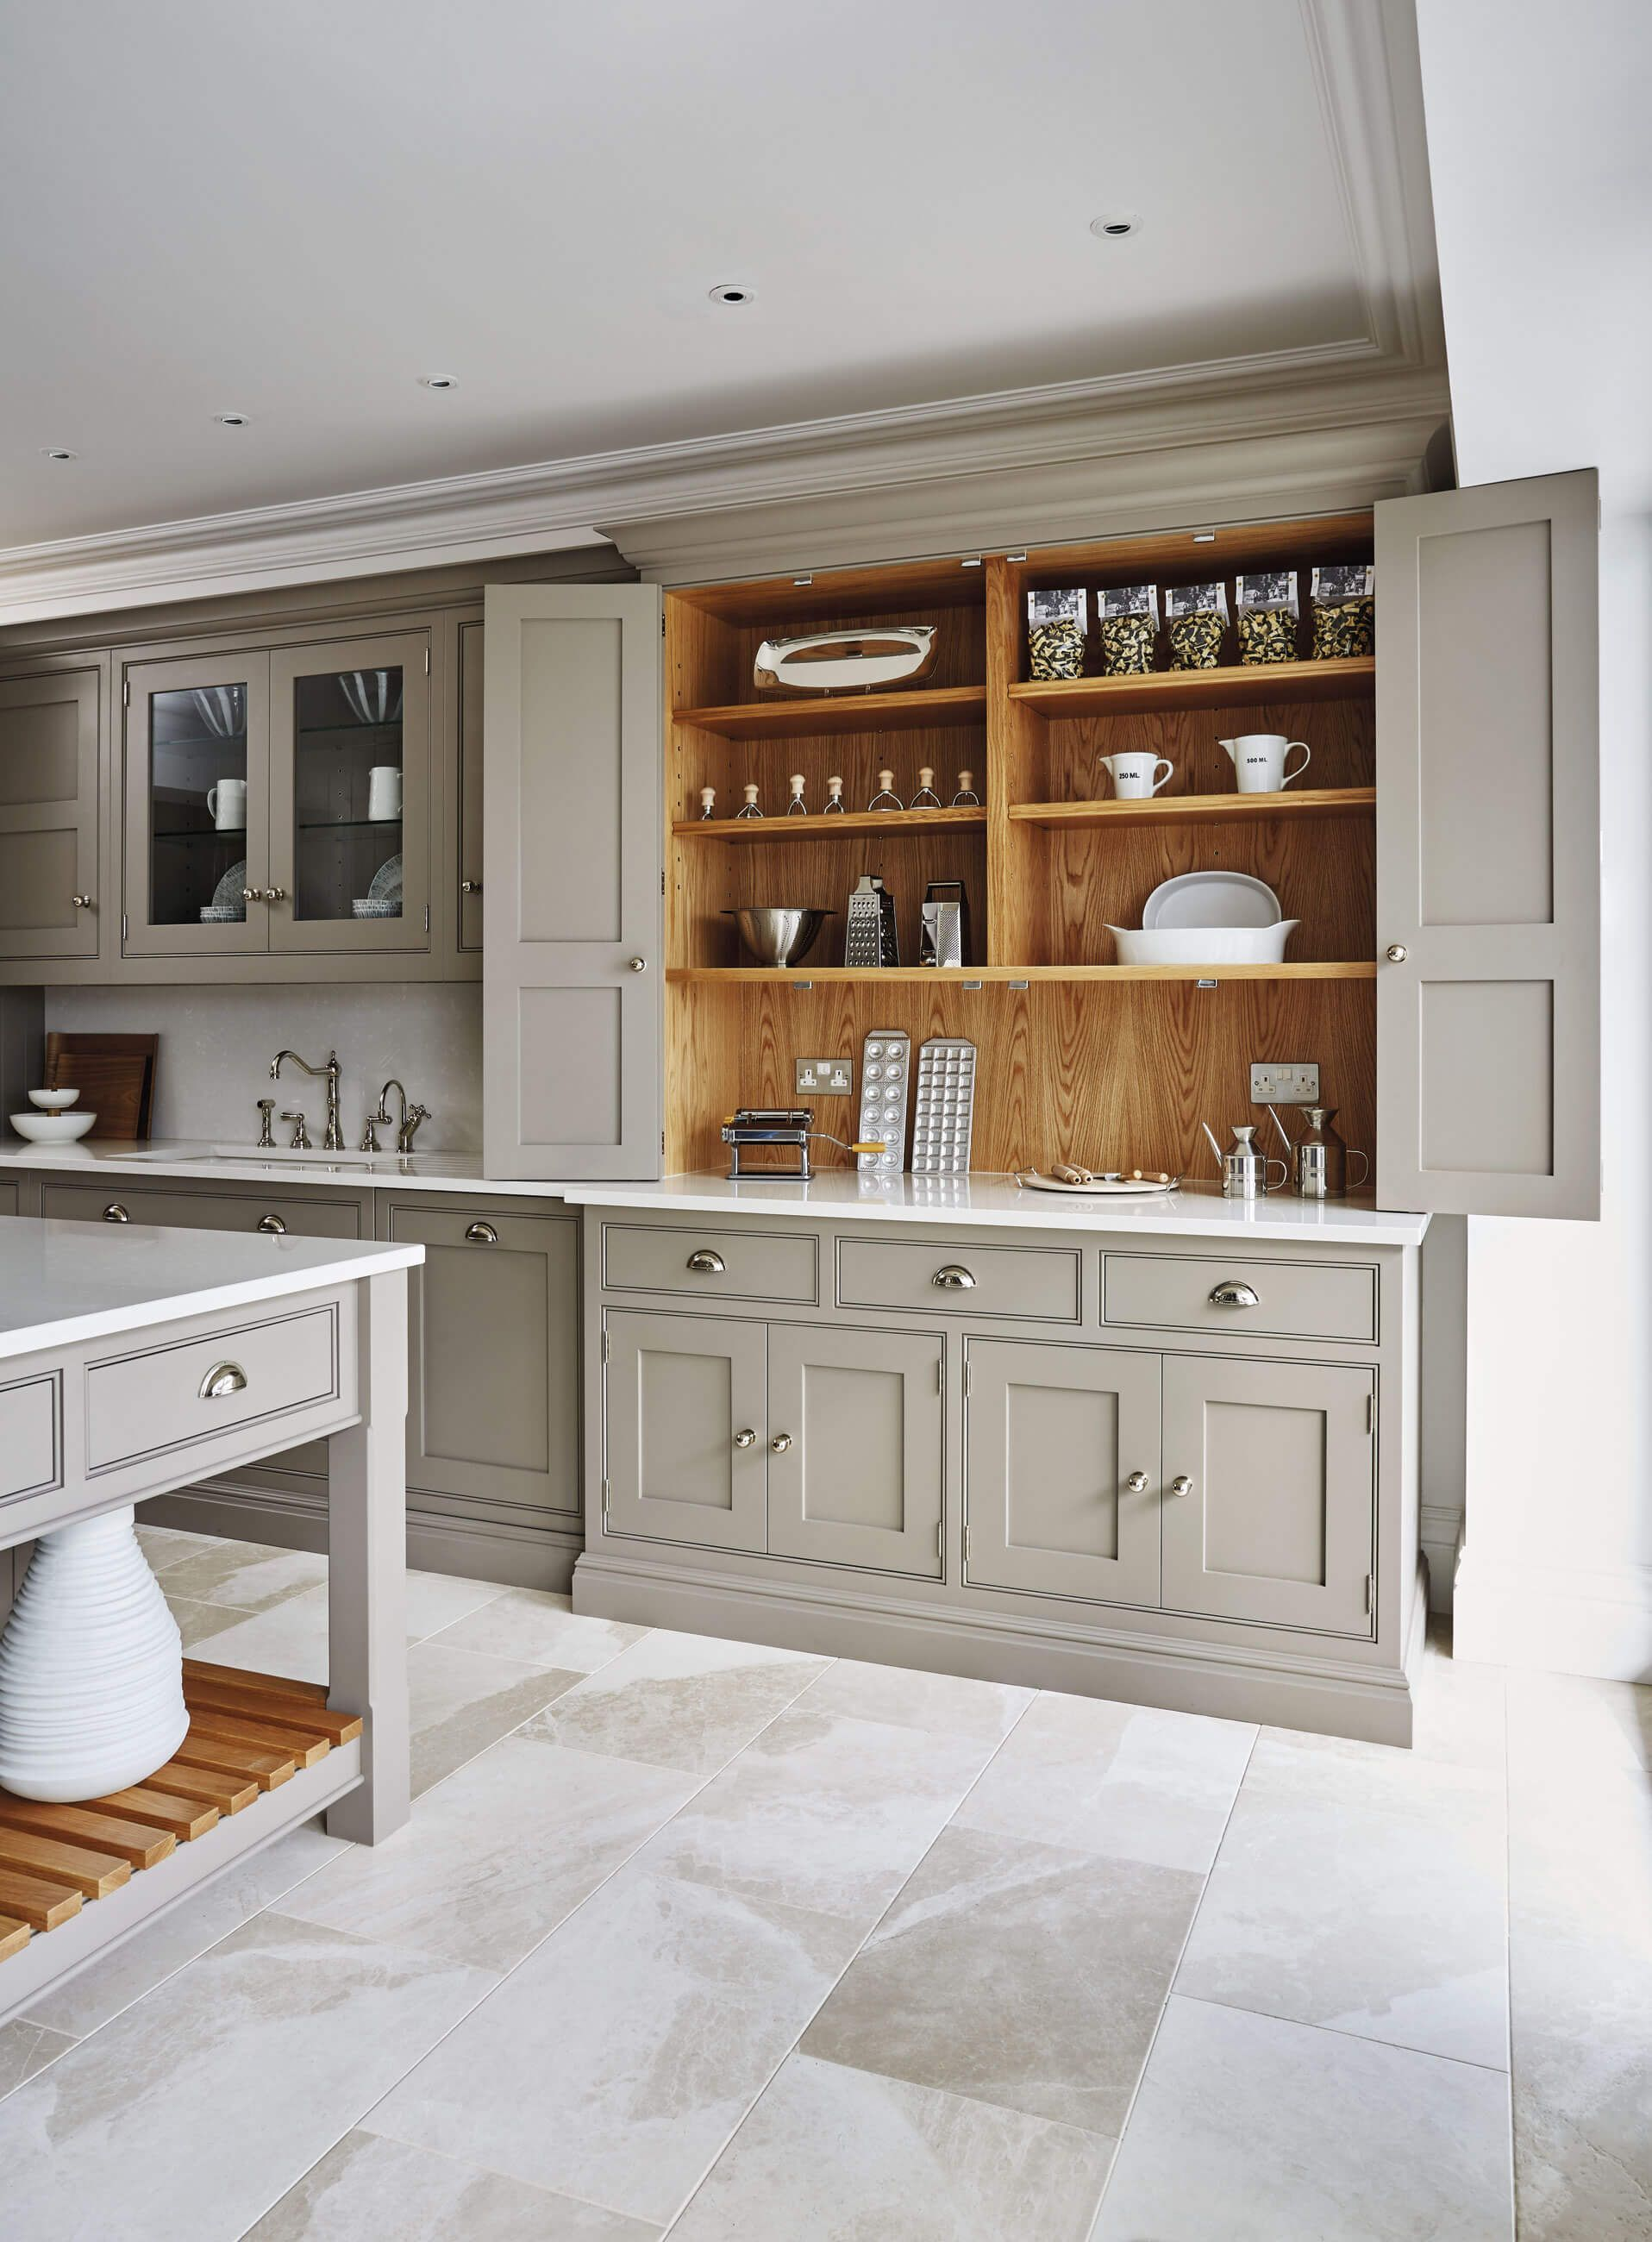 10+ Unbelievable Small Kitchen Remodel Ranch Ideas